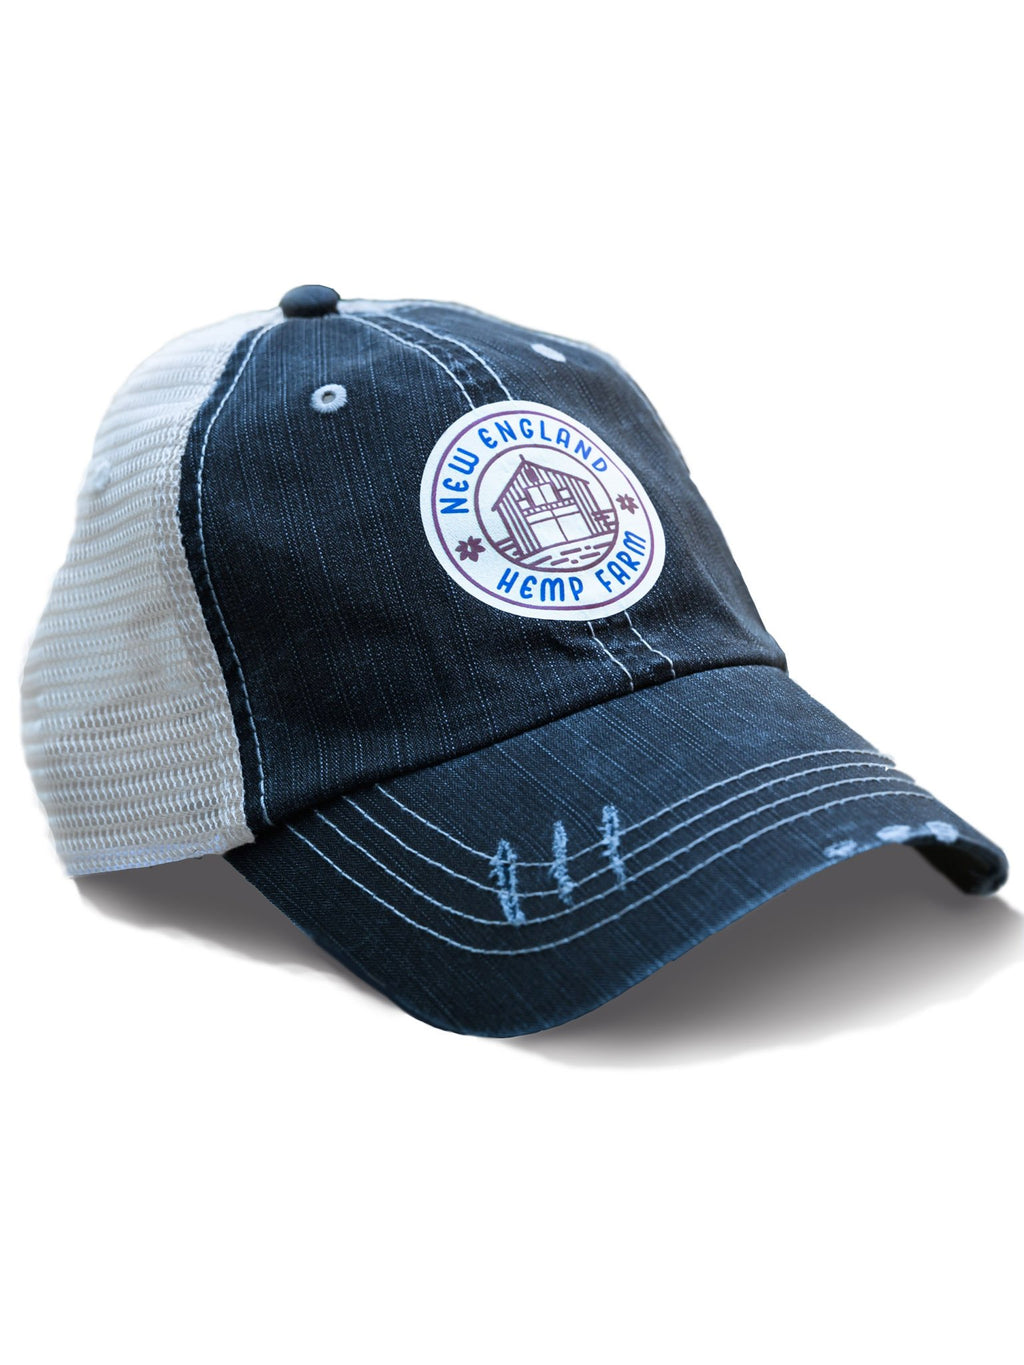 The Old Barn Trucker Hat